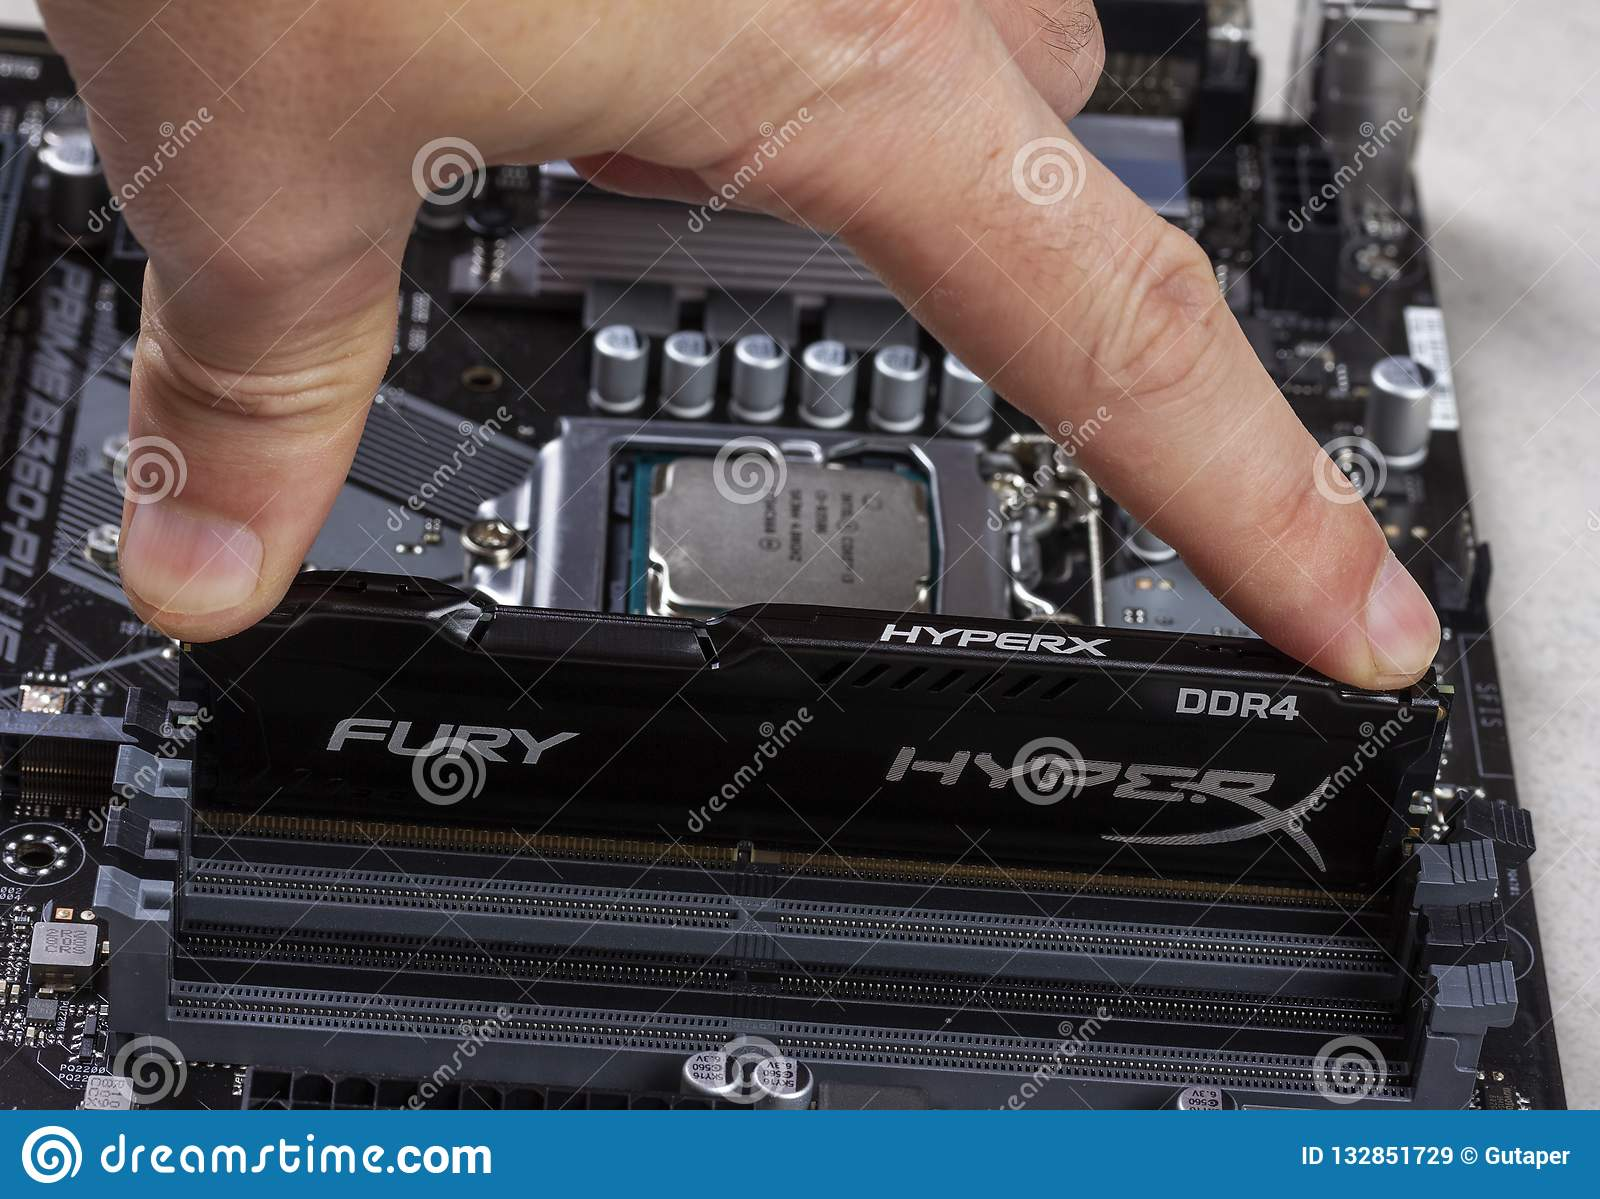 Man Installs An Ddr 4 Dimm 16 Gb Kingston Hyperx Fury Memory Ram Module In The Slot On The Motherboard Closeup Editorial Stock Image Image Of Capacity Closeup 132851729